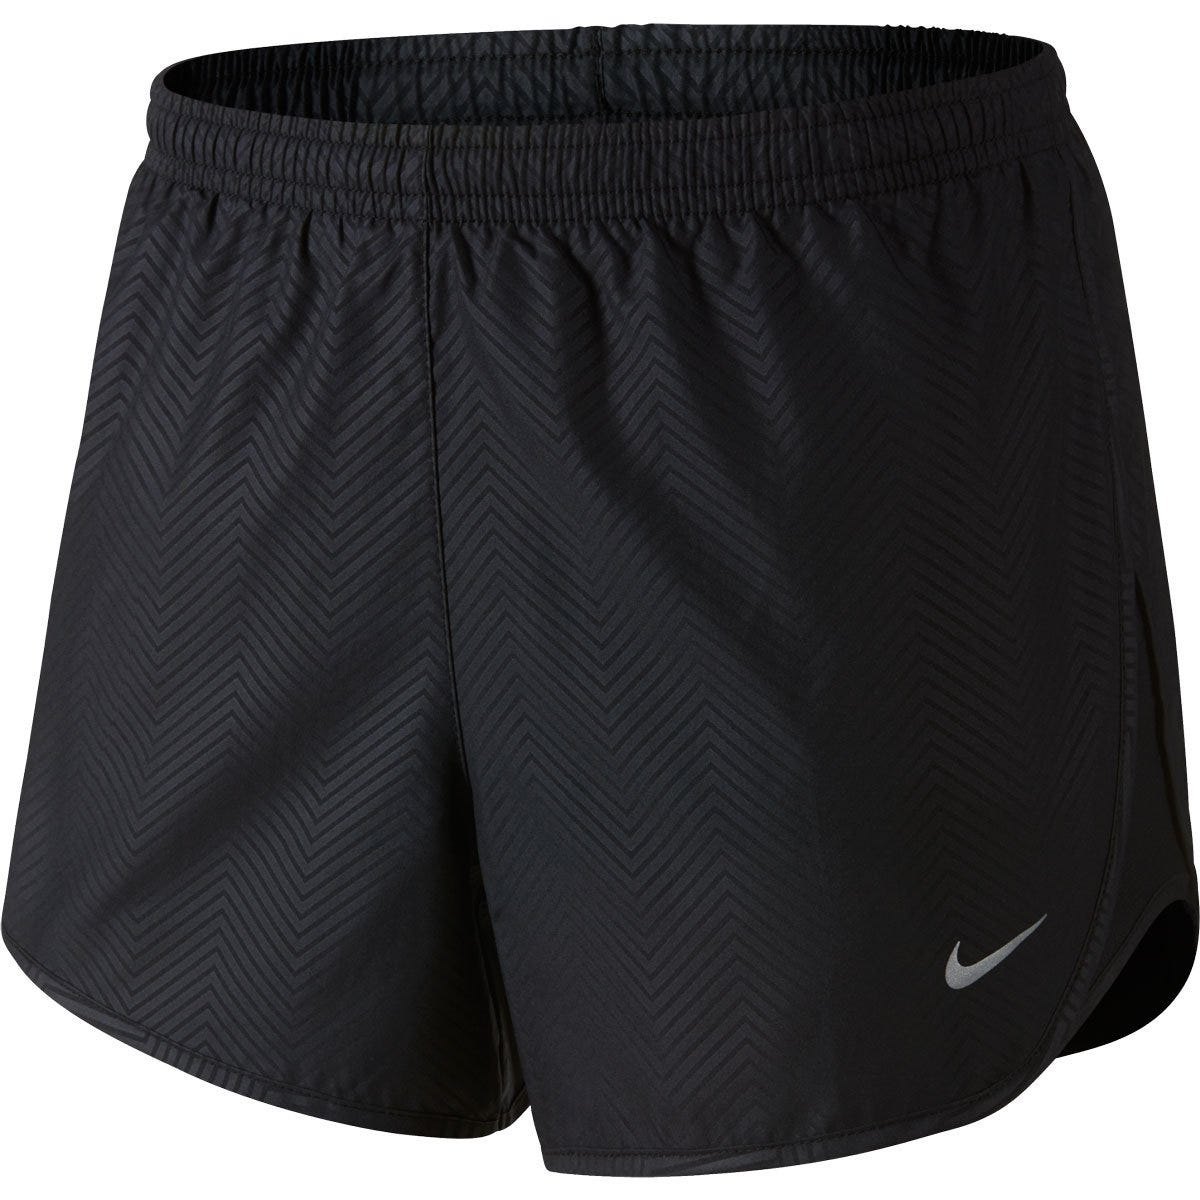 Womens XL Tempo Modern Embossed Softball Shorts - Black/Silver Nike